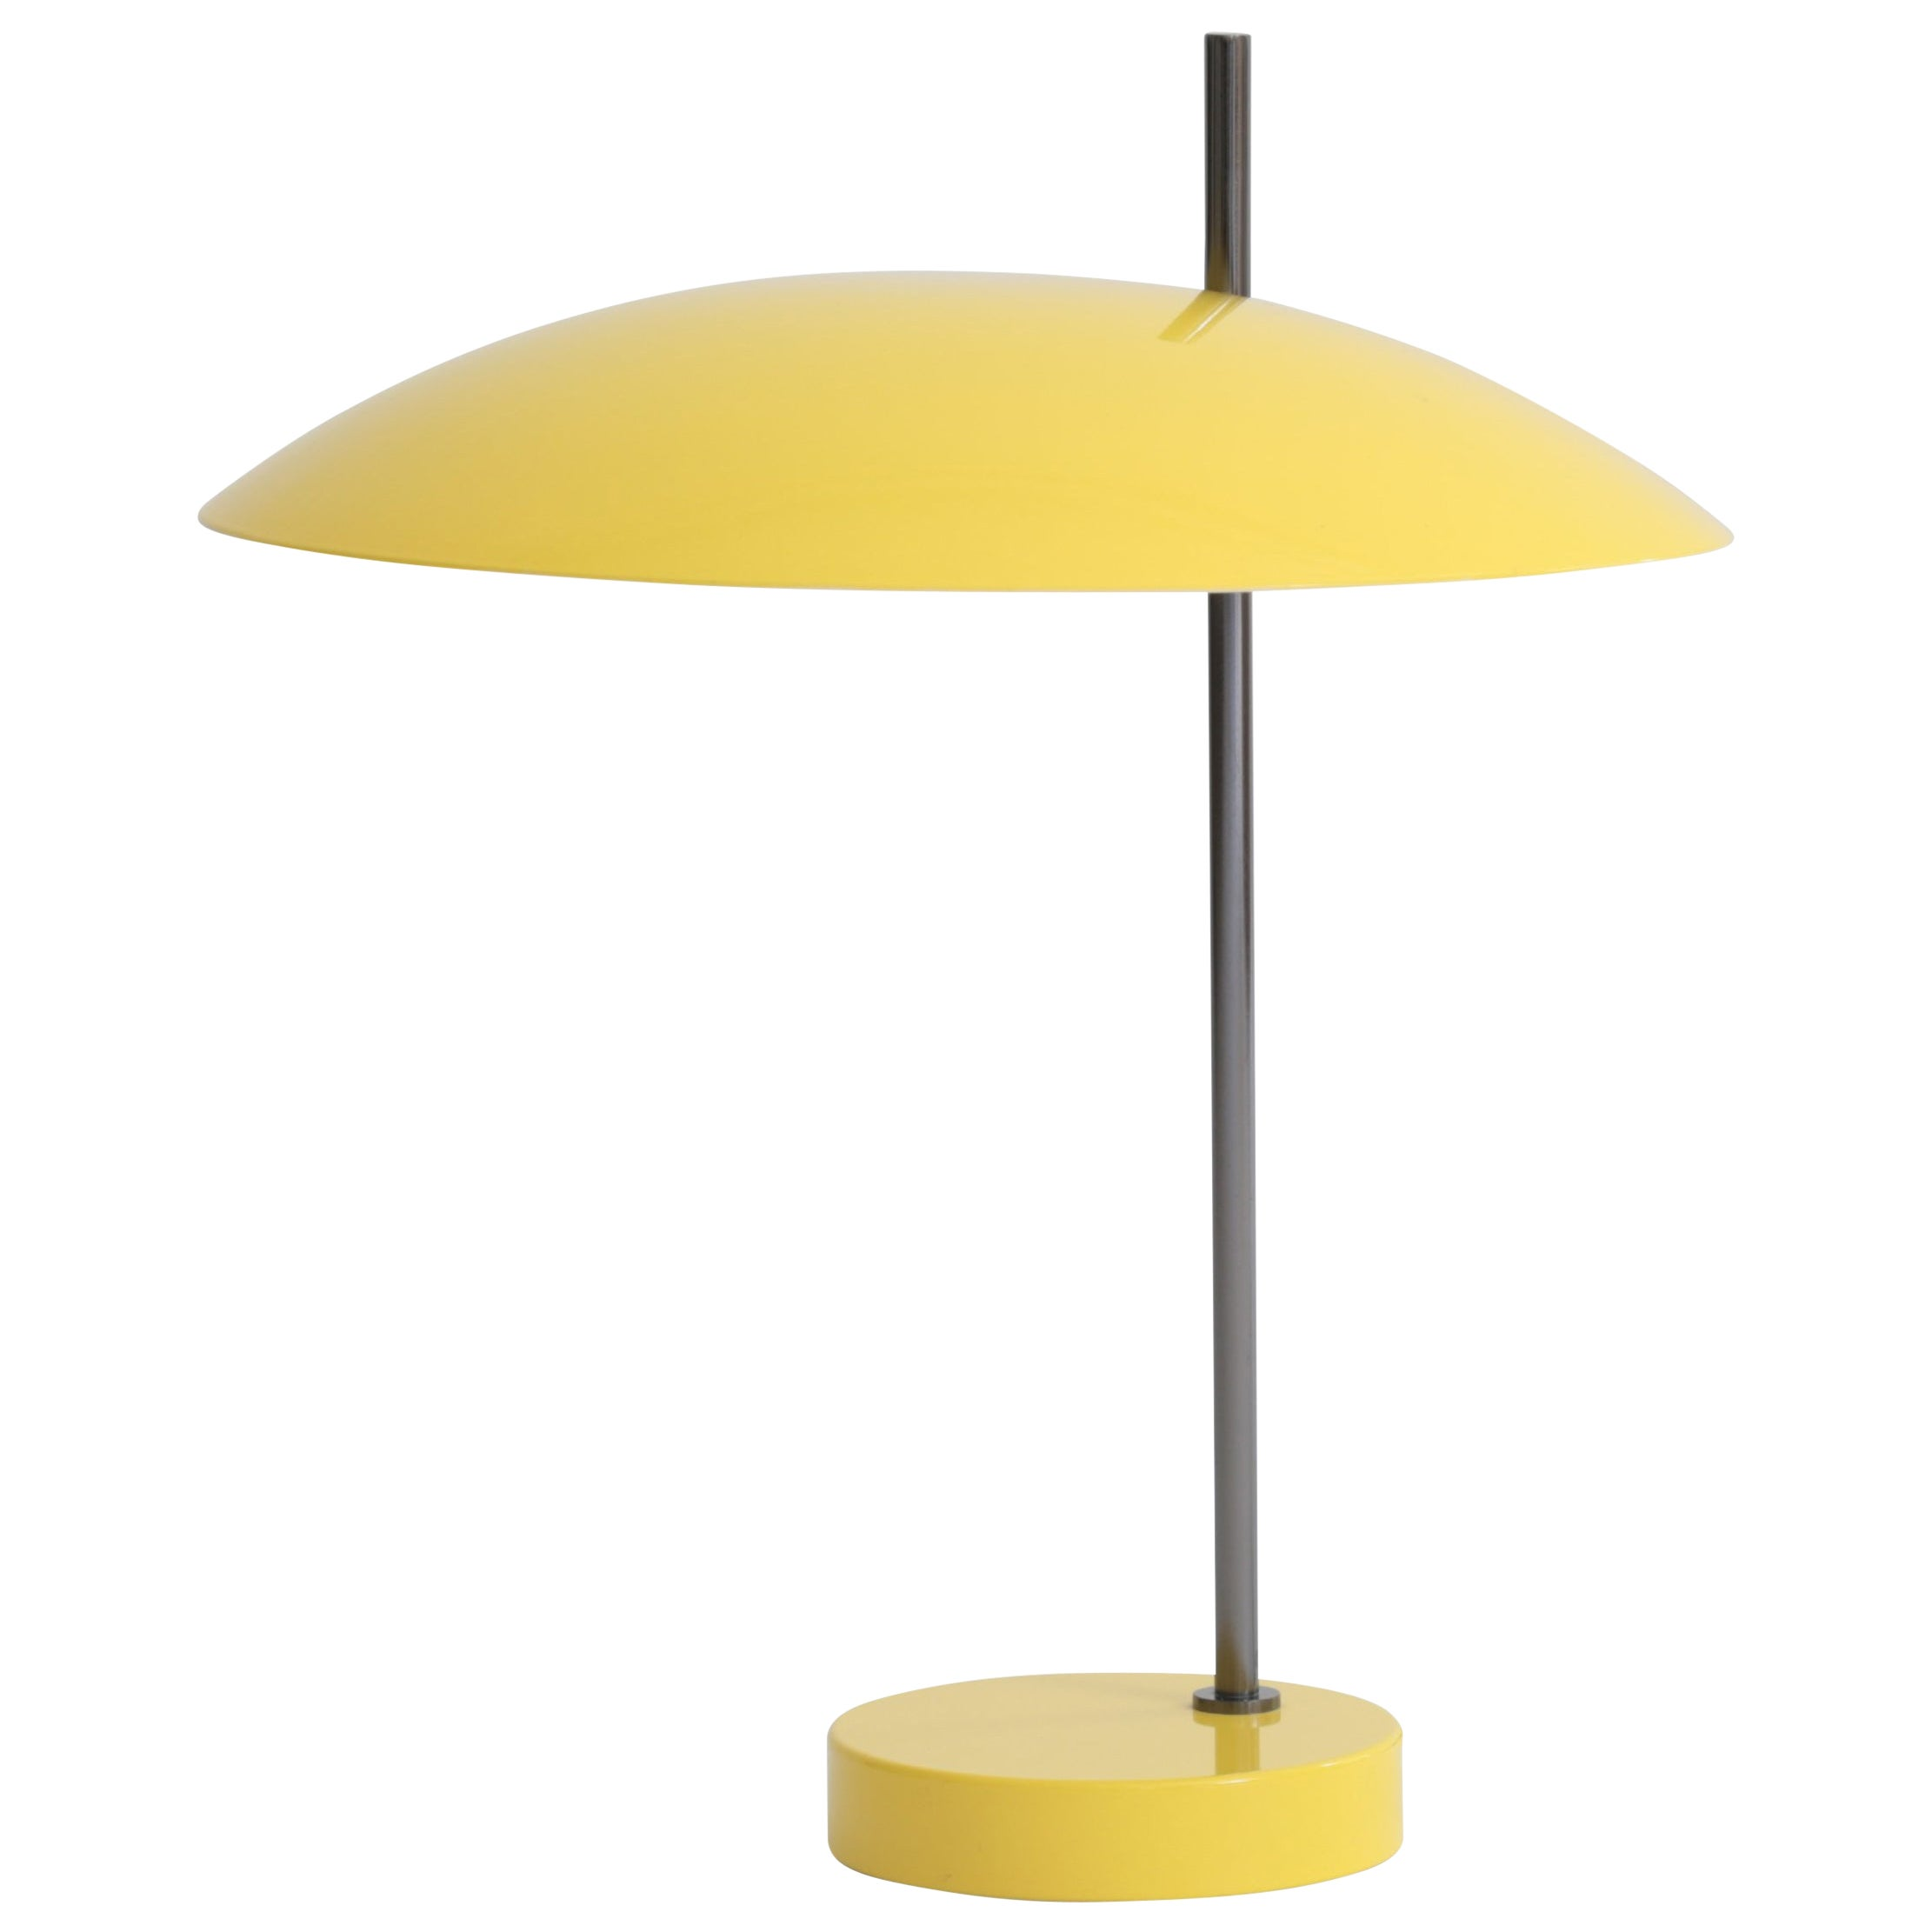 Pierre Disderot Model #1013 Table Lamp in Yellow & Gunmetal for Disderot, France